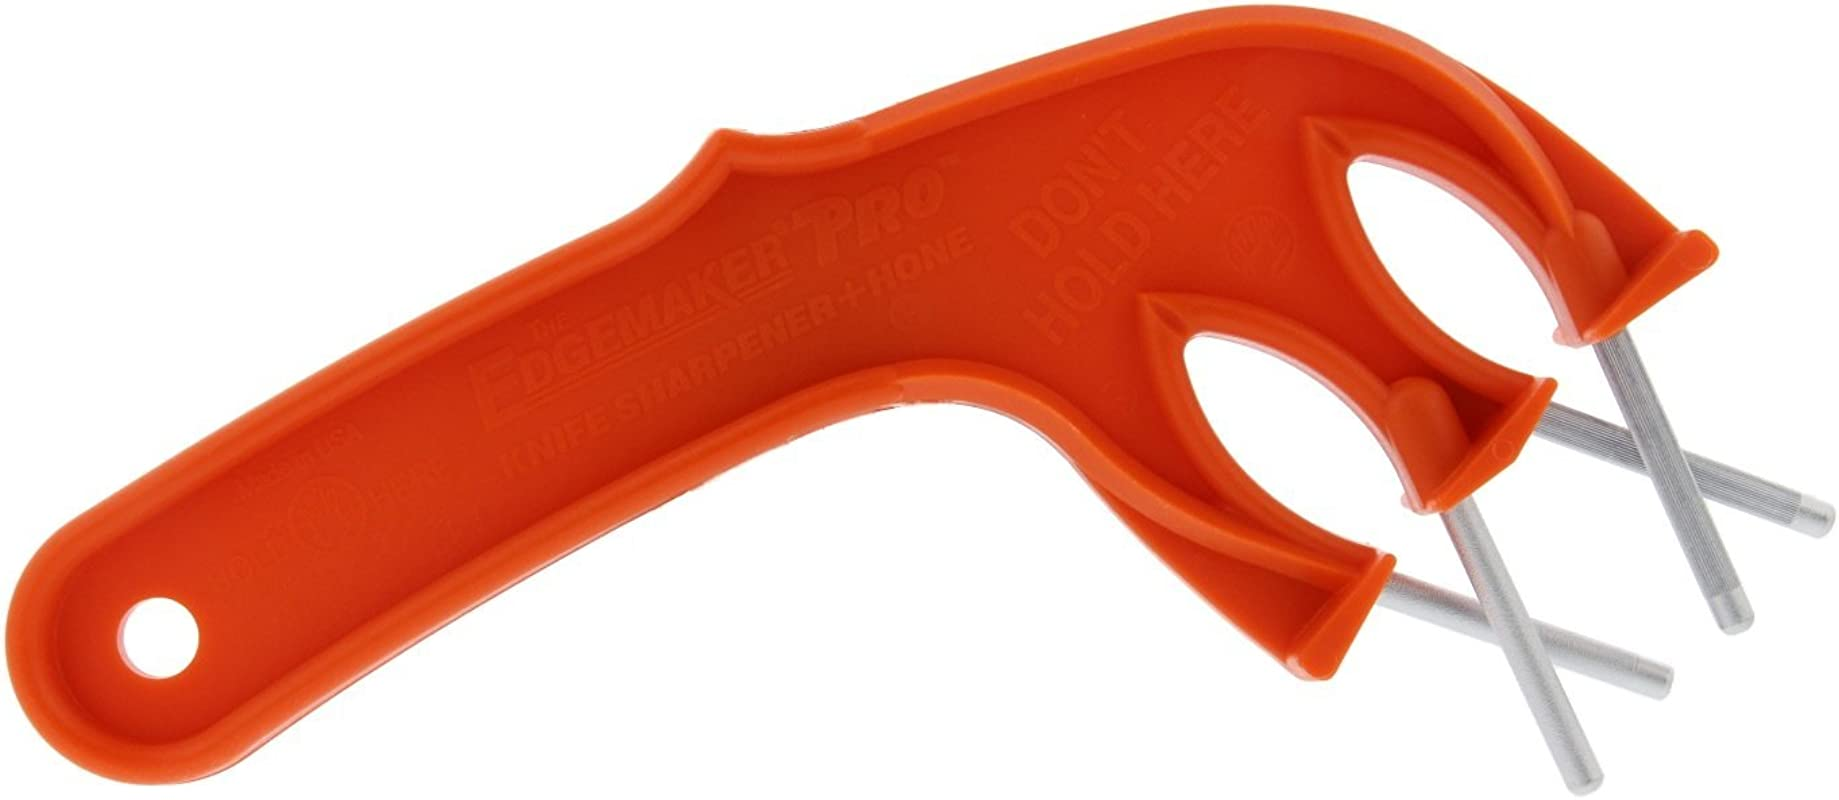 Edgemaker Knife Sharpener Pro 331 Perfect For Sharpening And Honing Any Blade Straight Wavy And Serrated Leaves A Smooth Hard Blade Durable Portable Secure Easy To Use Orange